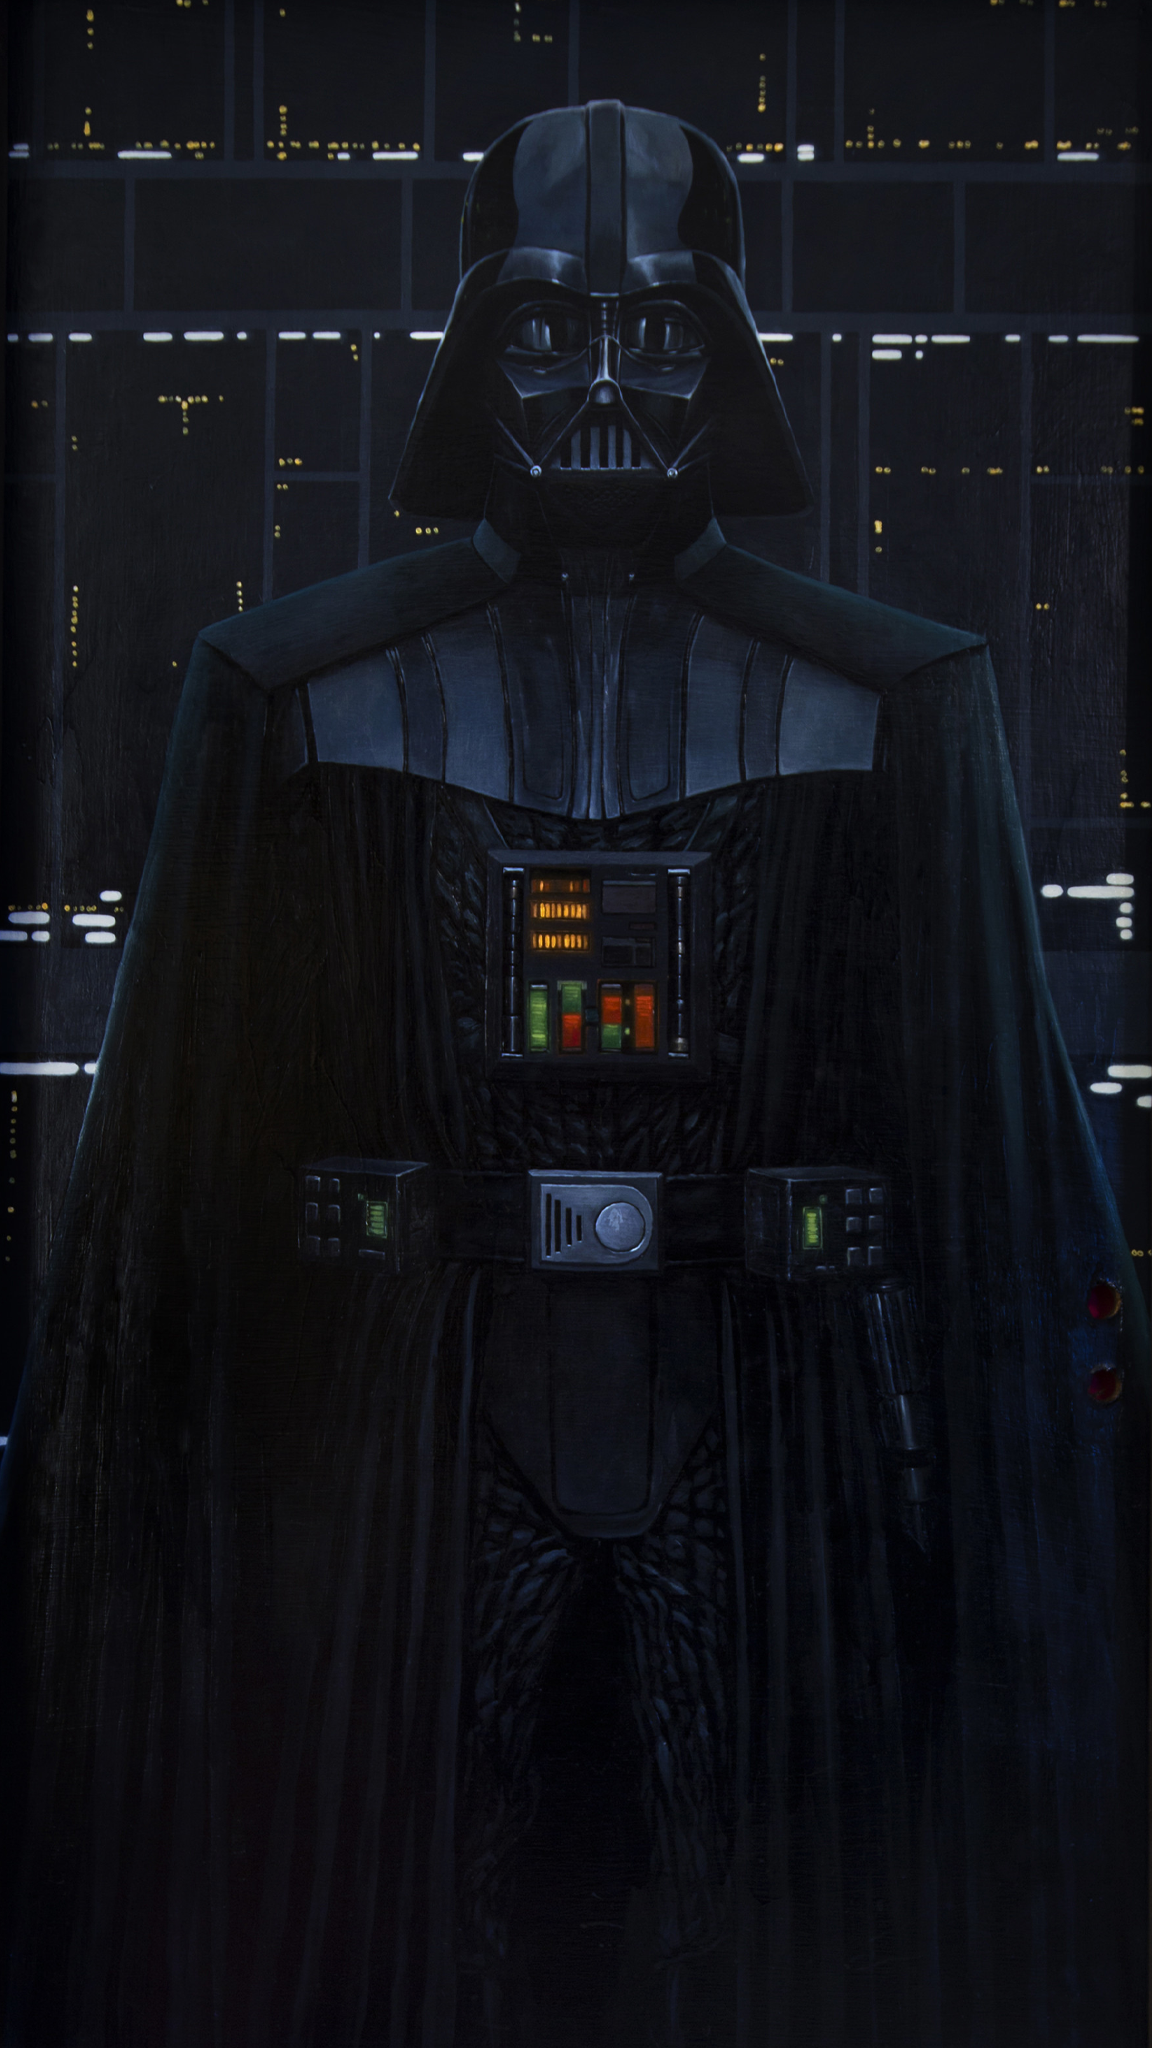 Darth Vader Wallpaper Hd Phone 1152x2048 Download Hd Wallpaper Wallpapertip